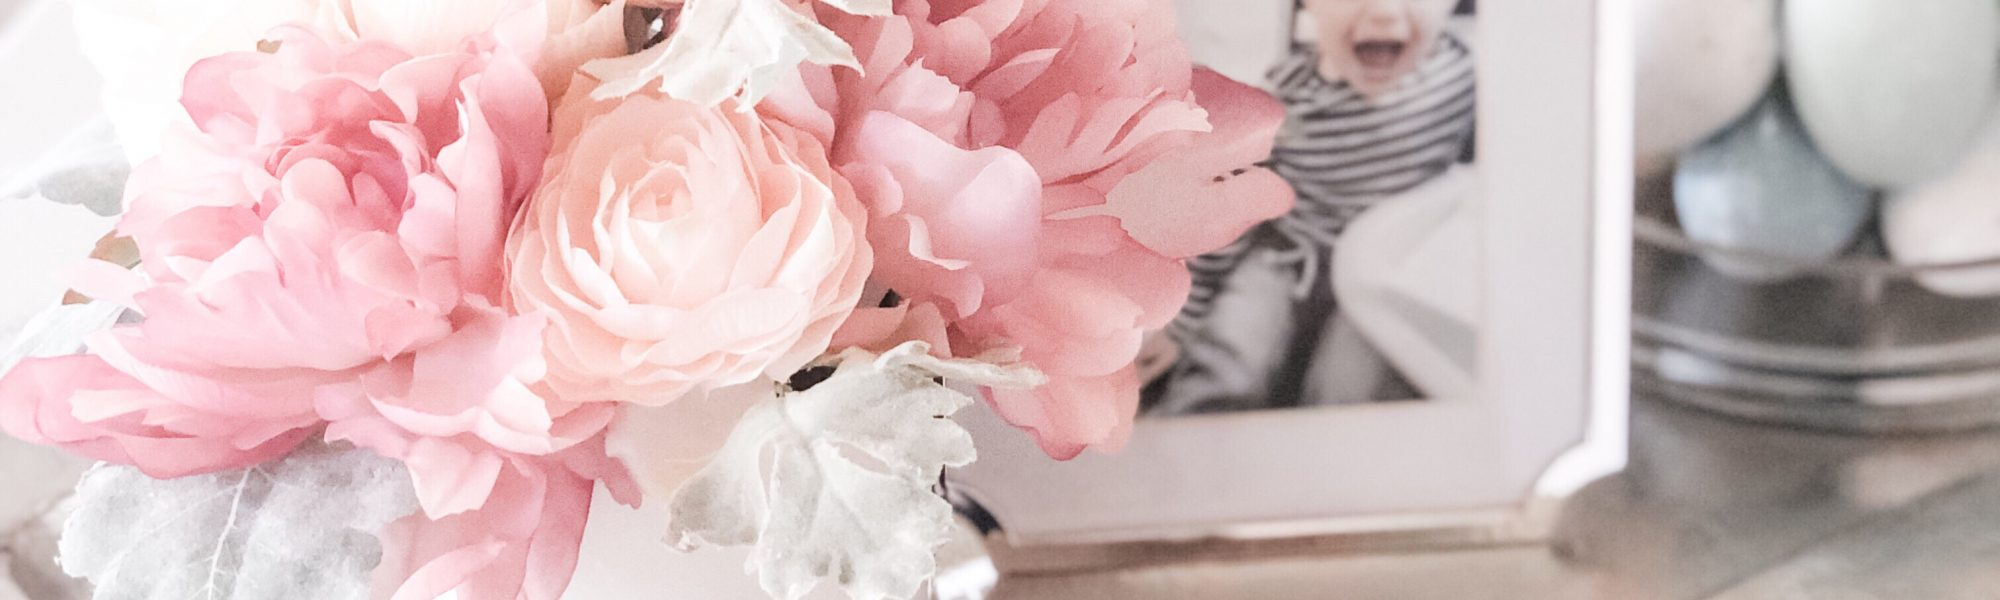 HOW TO CLEAN FAKE FLOWERS